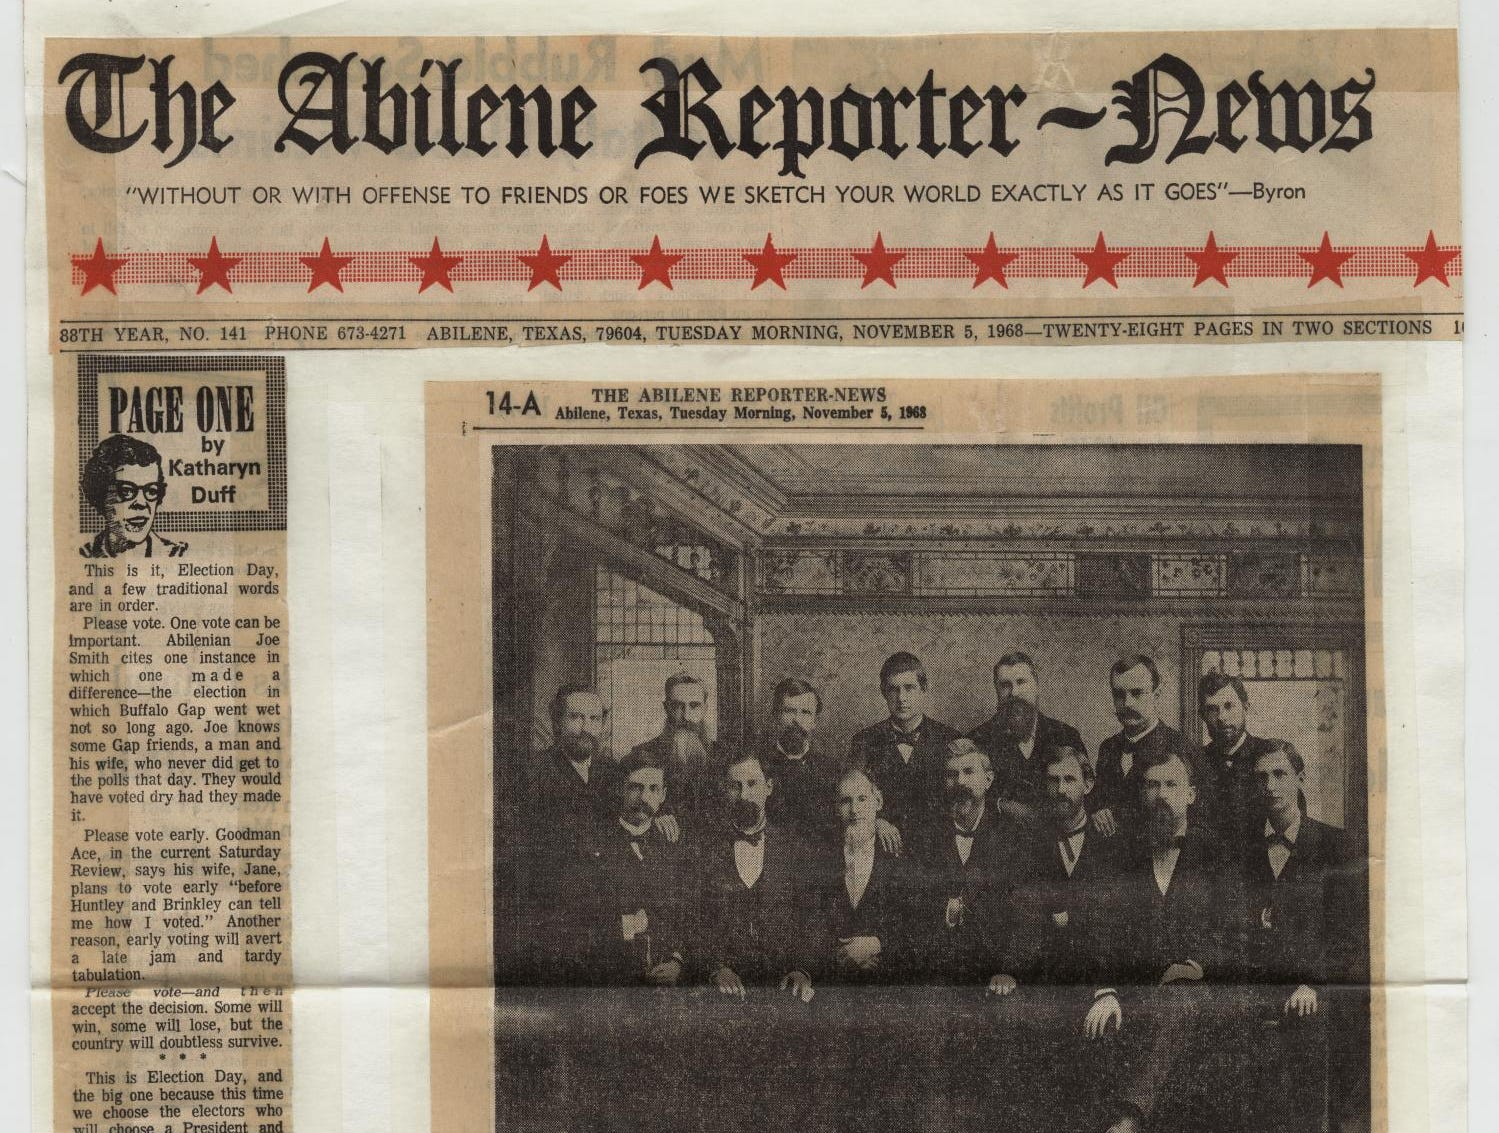 Various clippings from the Abilene Reporter-News, Nov. 5, 1963, including a Page One column by Katharyn Duff and a photo of the first Electors from the area, who in 1884 cast Texas' first 13 electoral votes for Grover Cleveland, including K.K. Legett of Abilene.